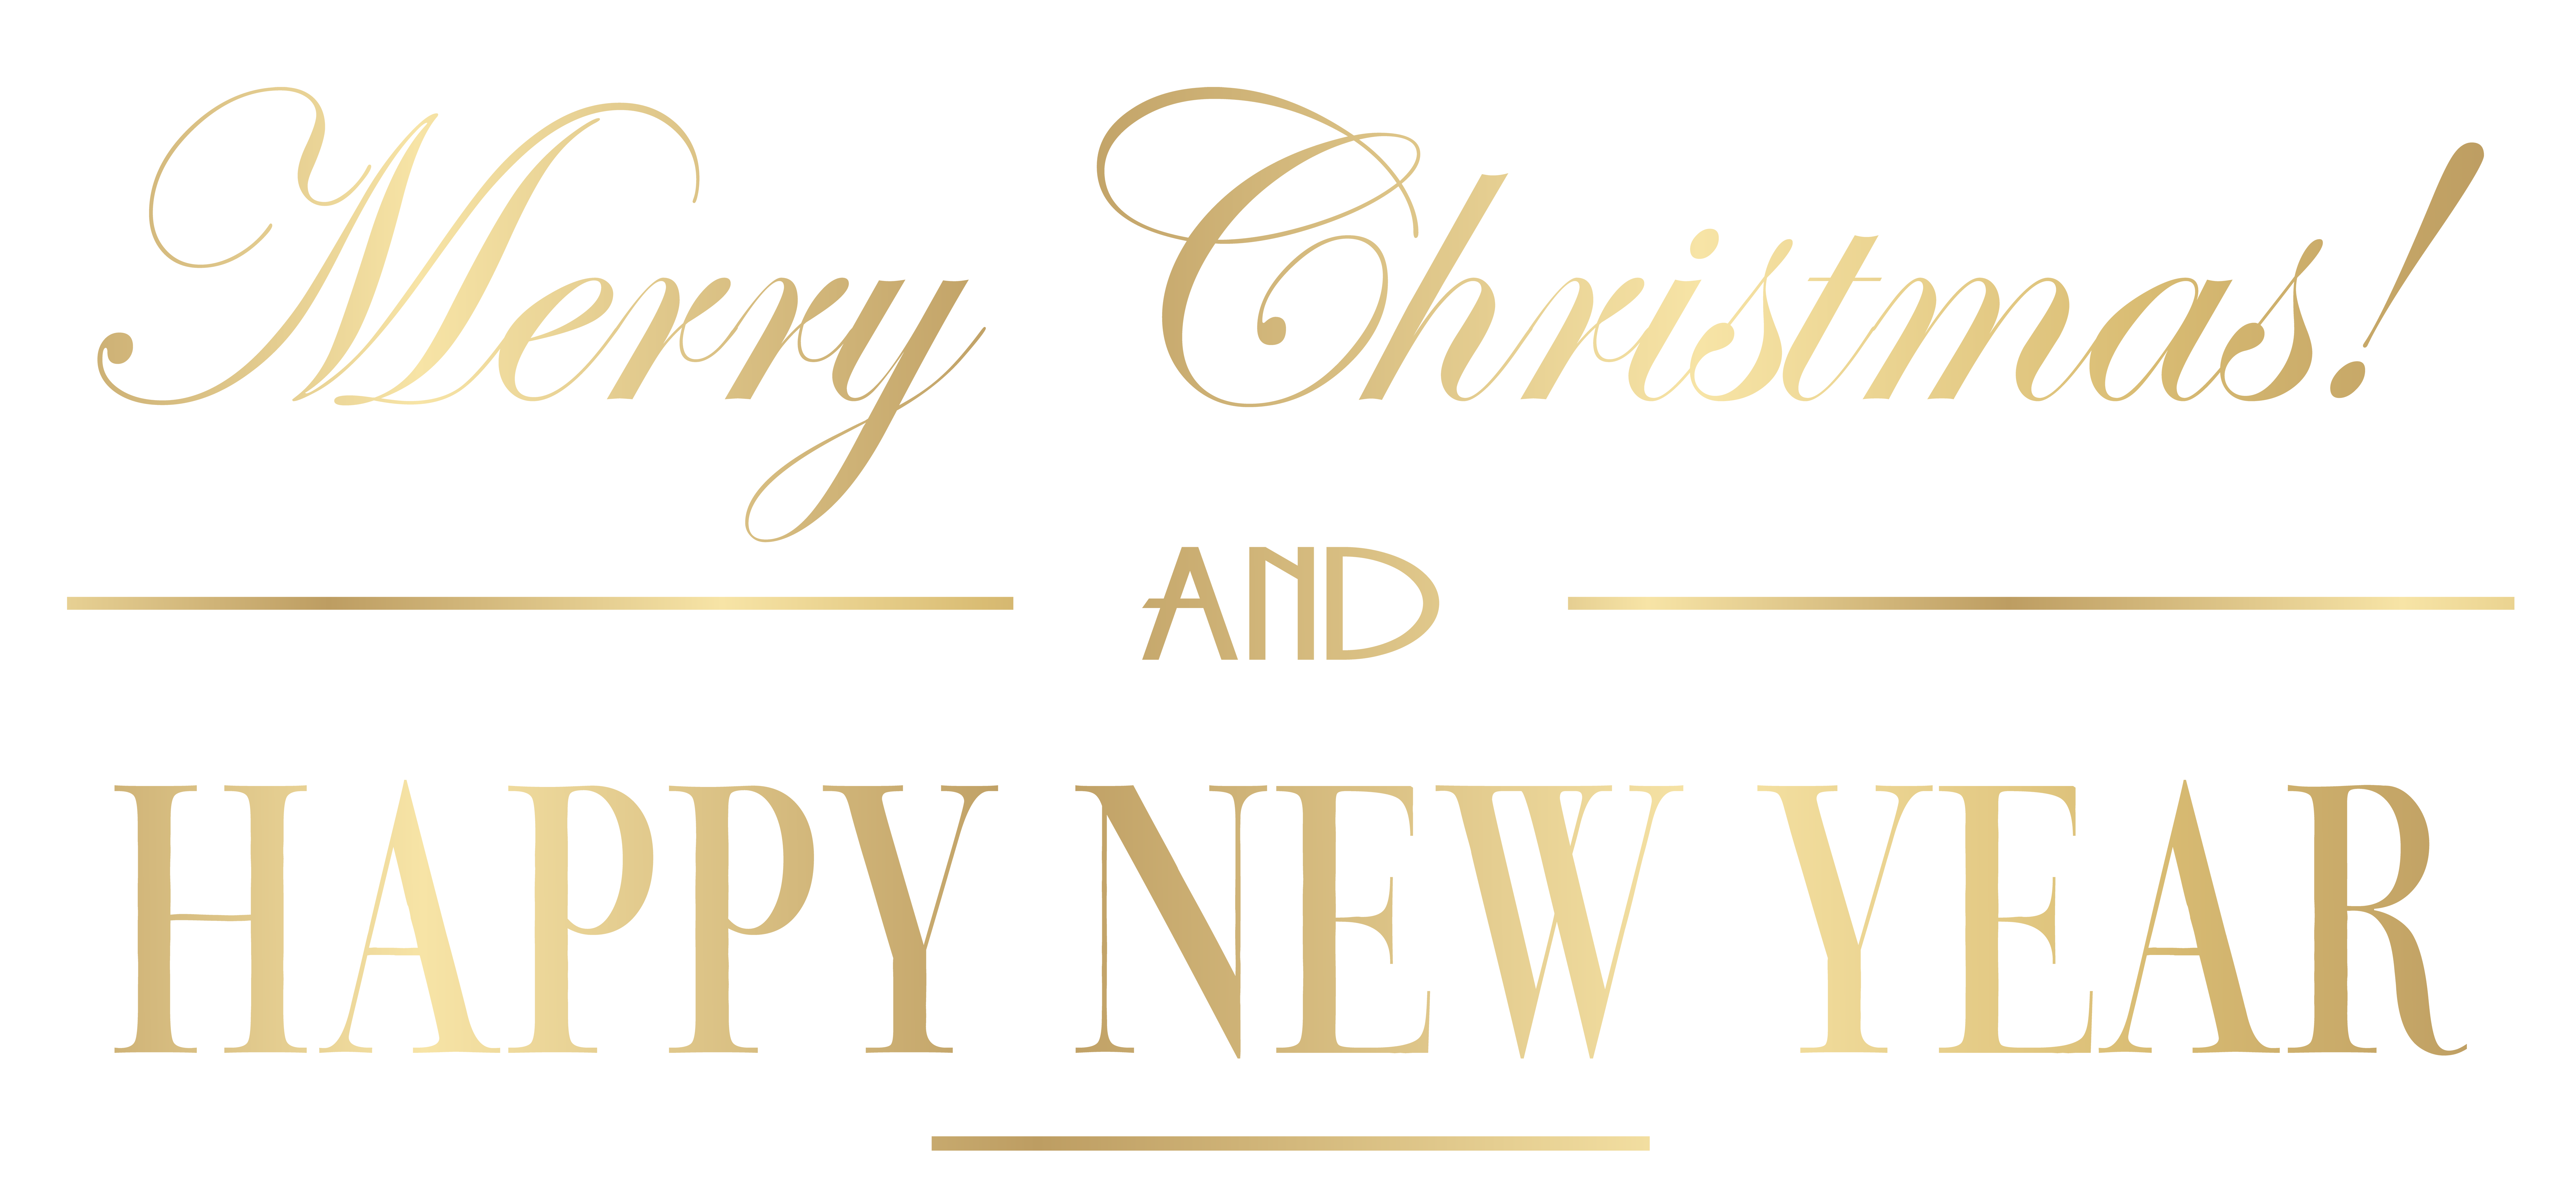 grinch clipart happy new year grinch happy new year transparent free for download on webstockreview 2020 webstockreview